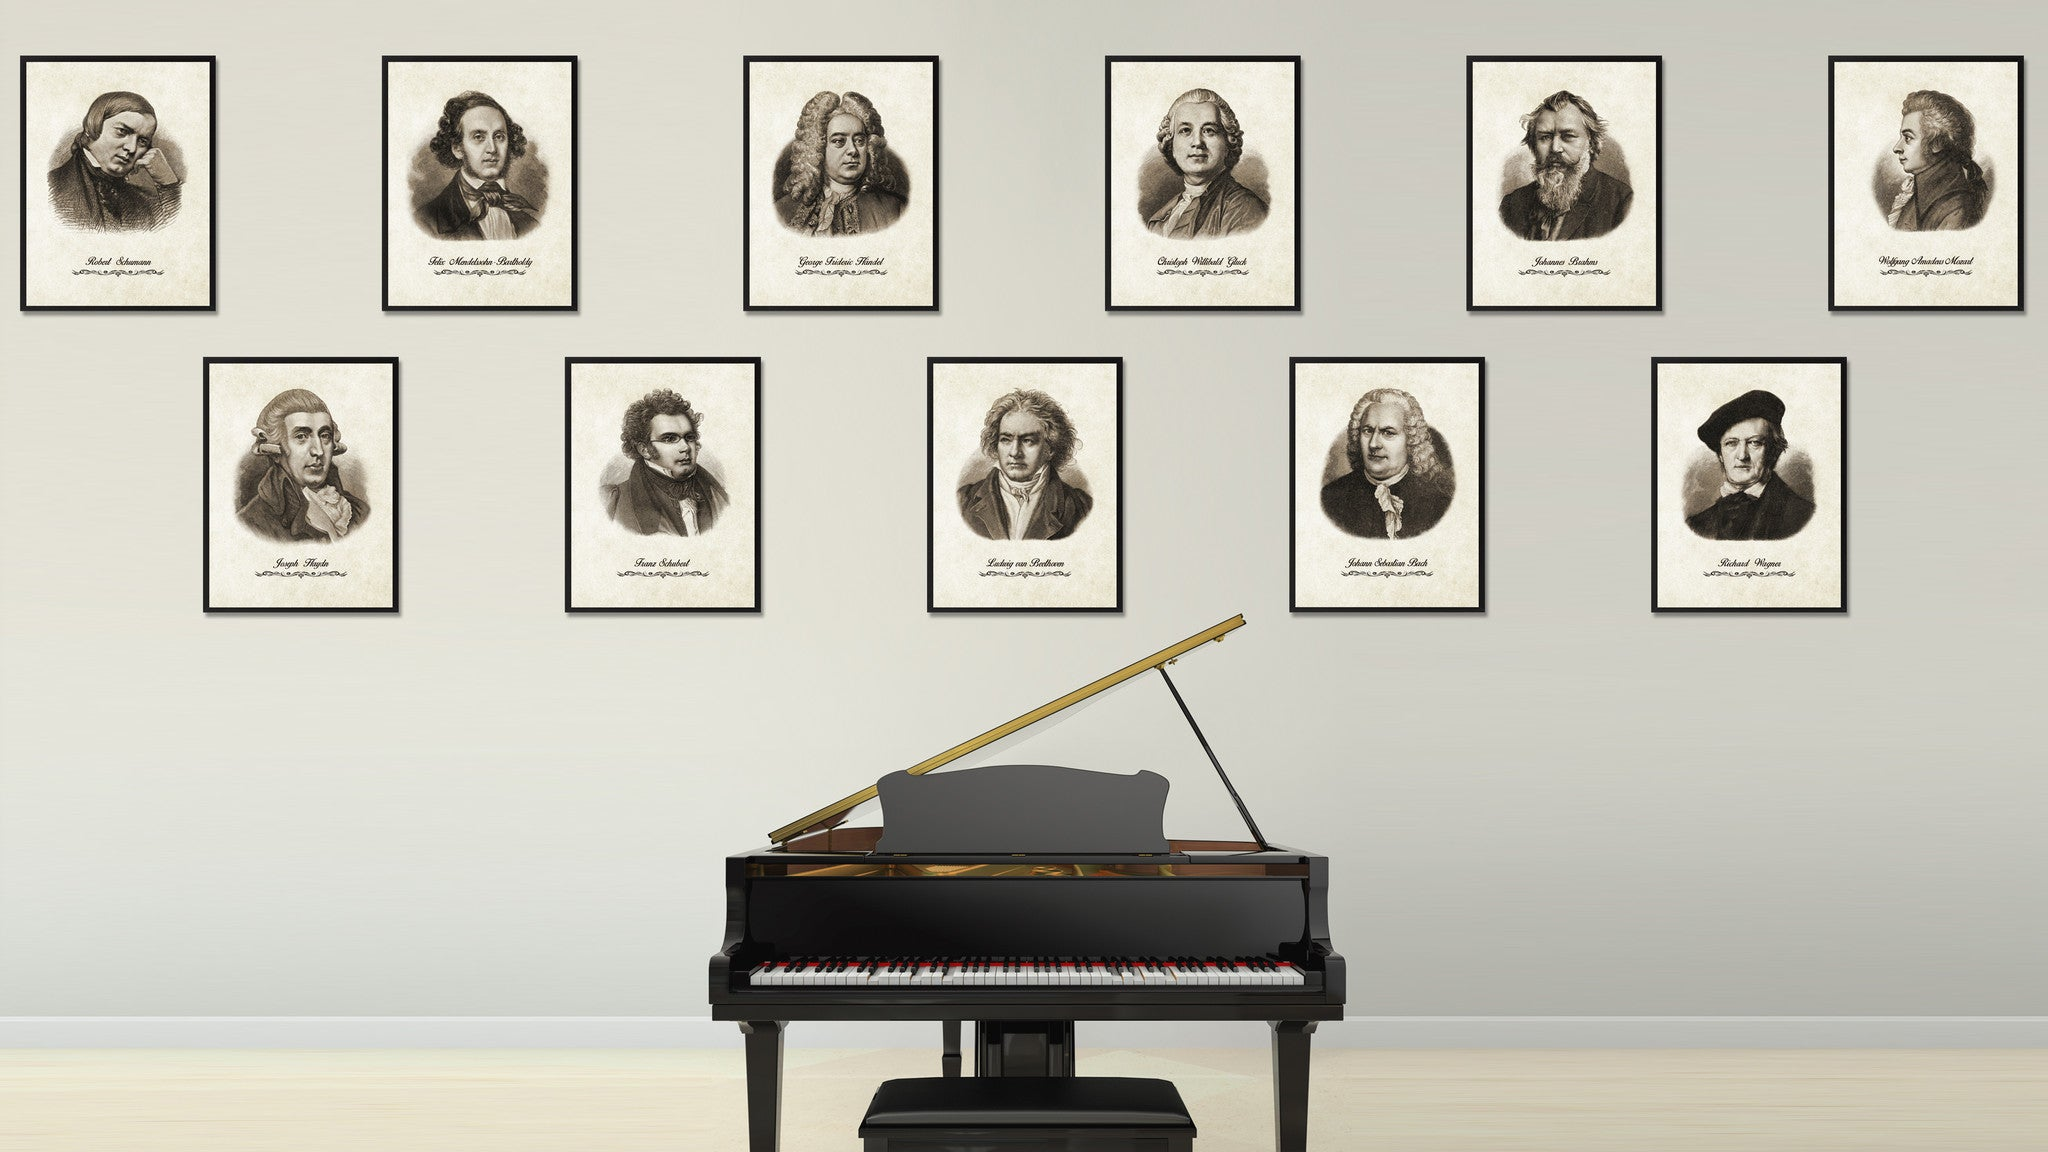 Haydn Musician Canvas Print Pictures Frames Music Home Décor Wall Art Gifts